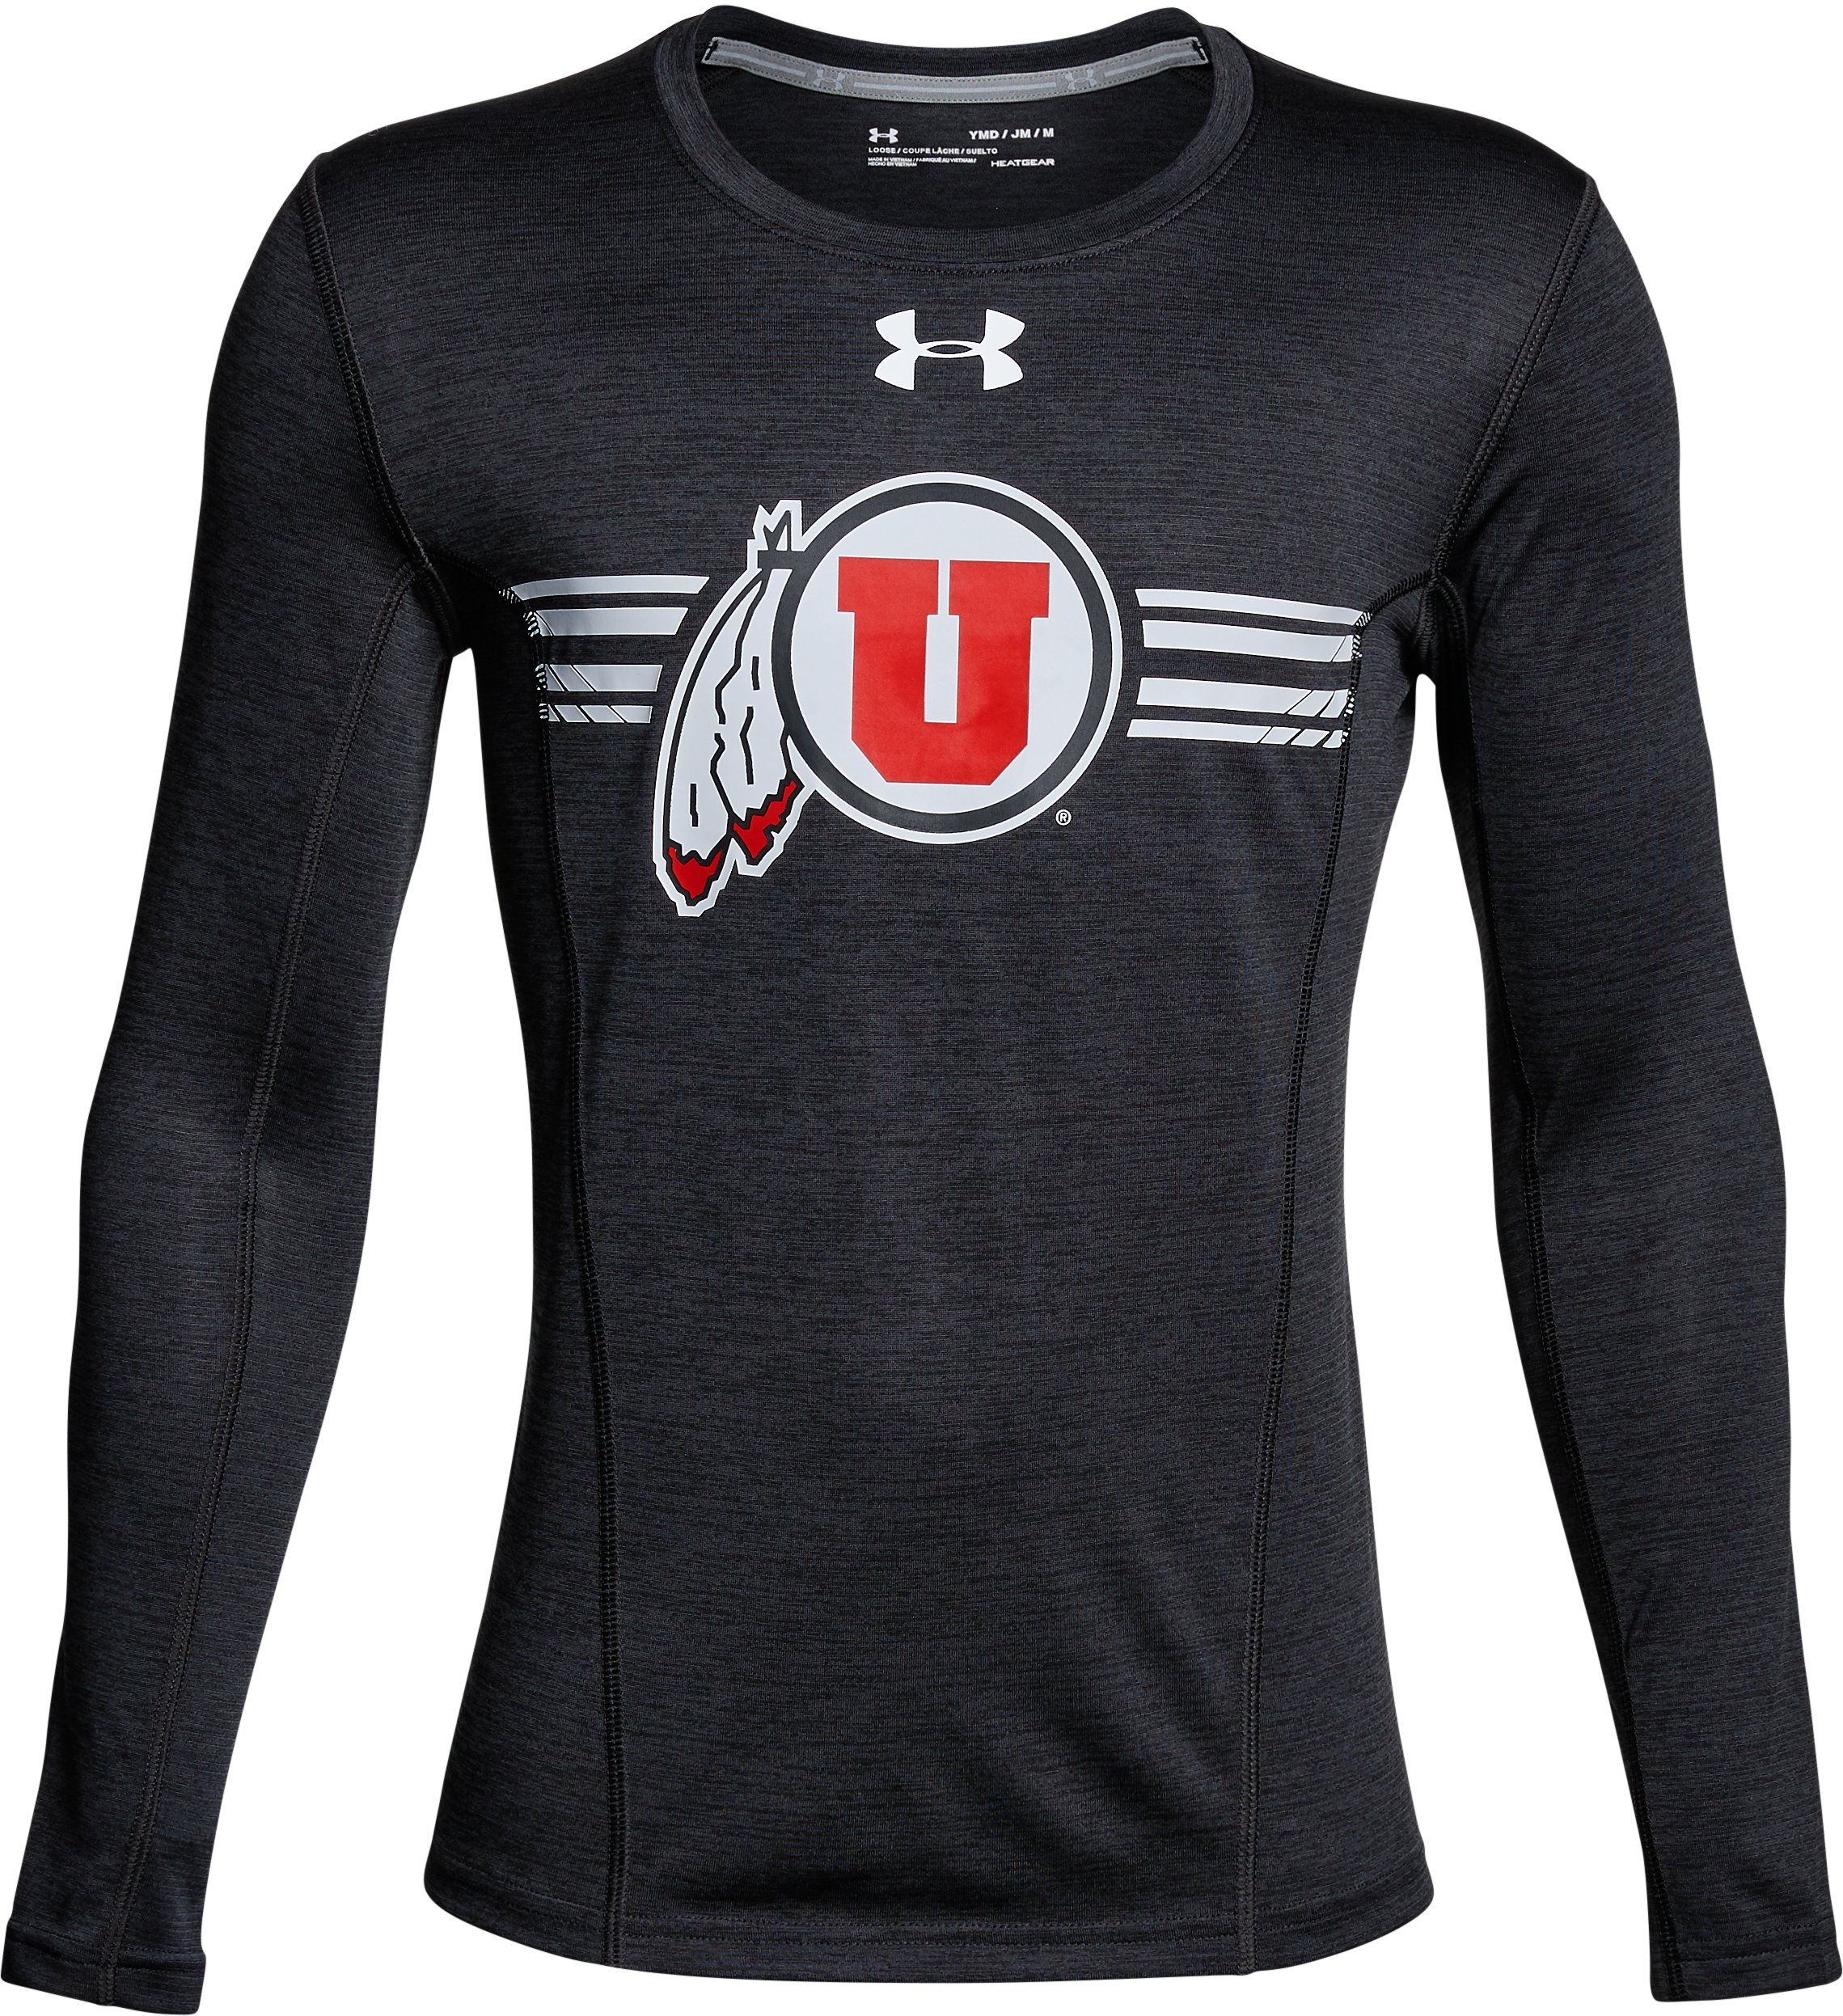 Boys' Utah Long Sleeve Training T-Shirt, Black